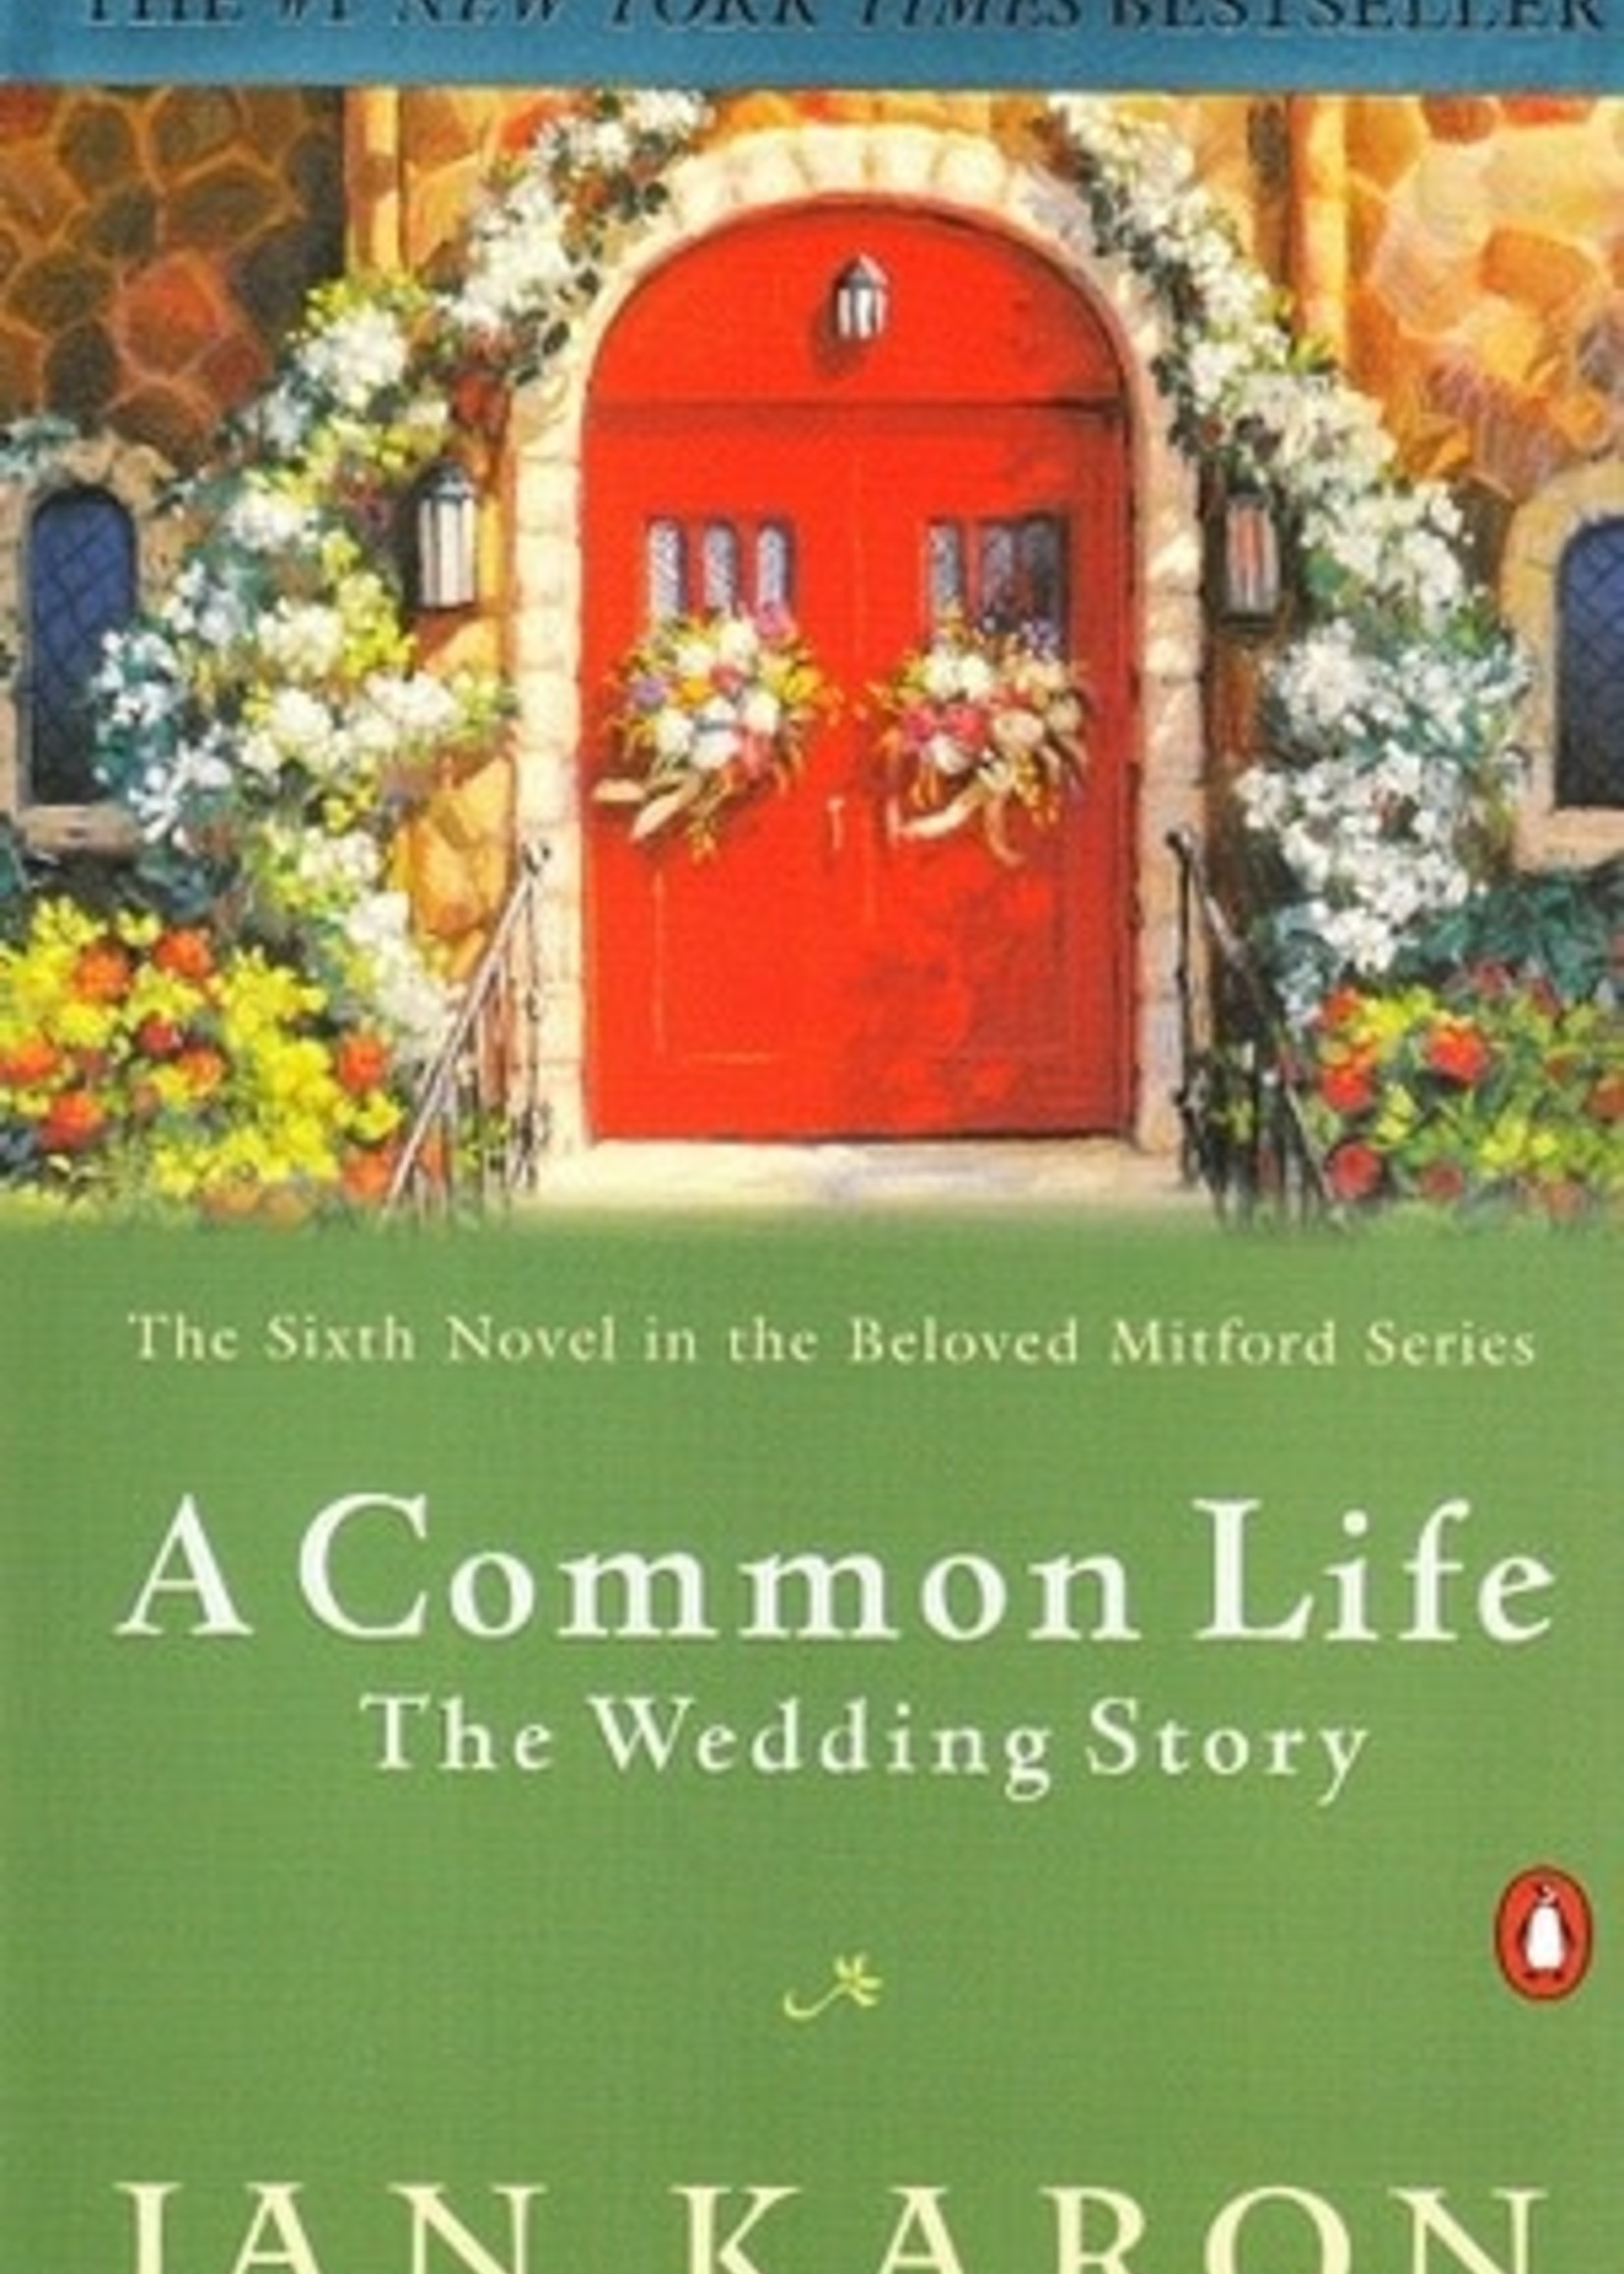 USED - A Common Life: The Wedding Story by Jan Karon